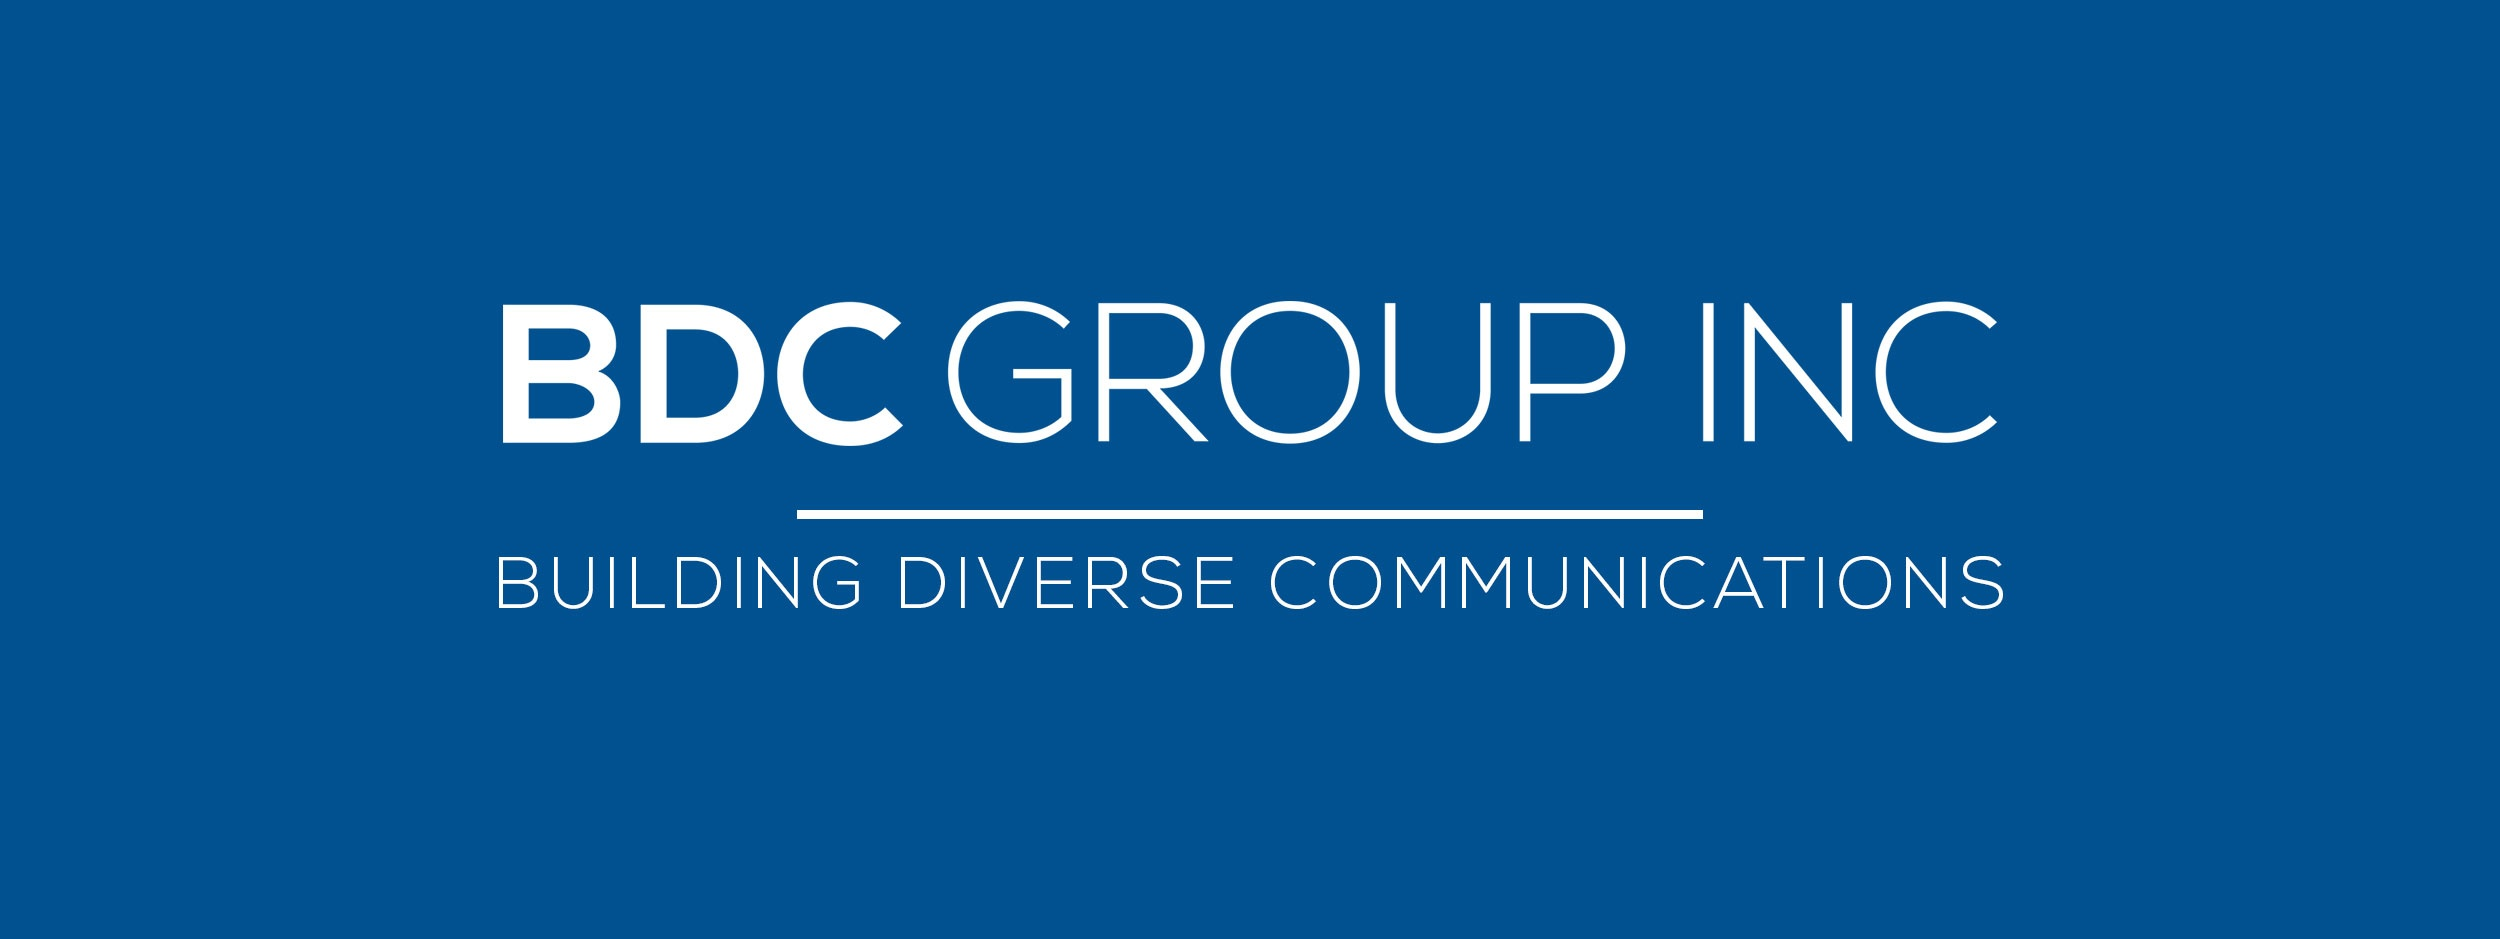 bdc-group-building-diverse-communications-blog